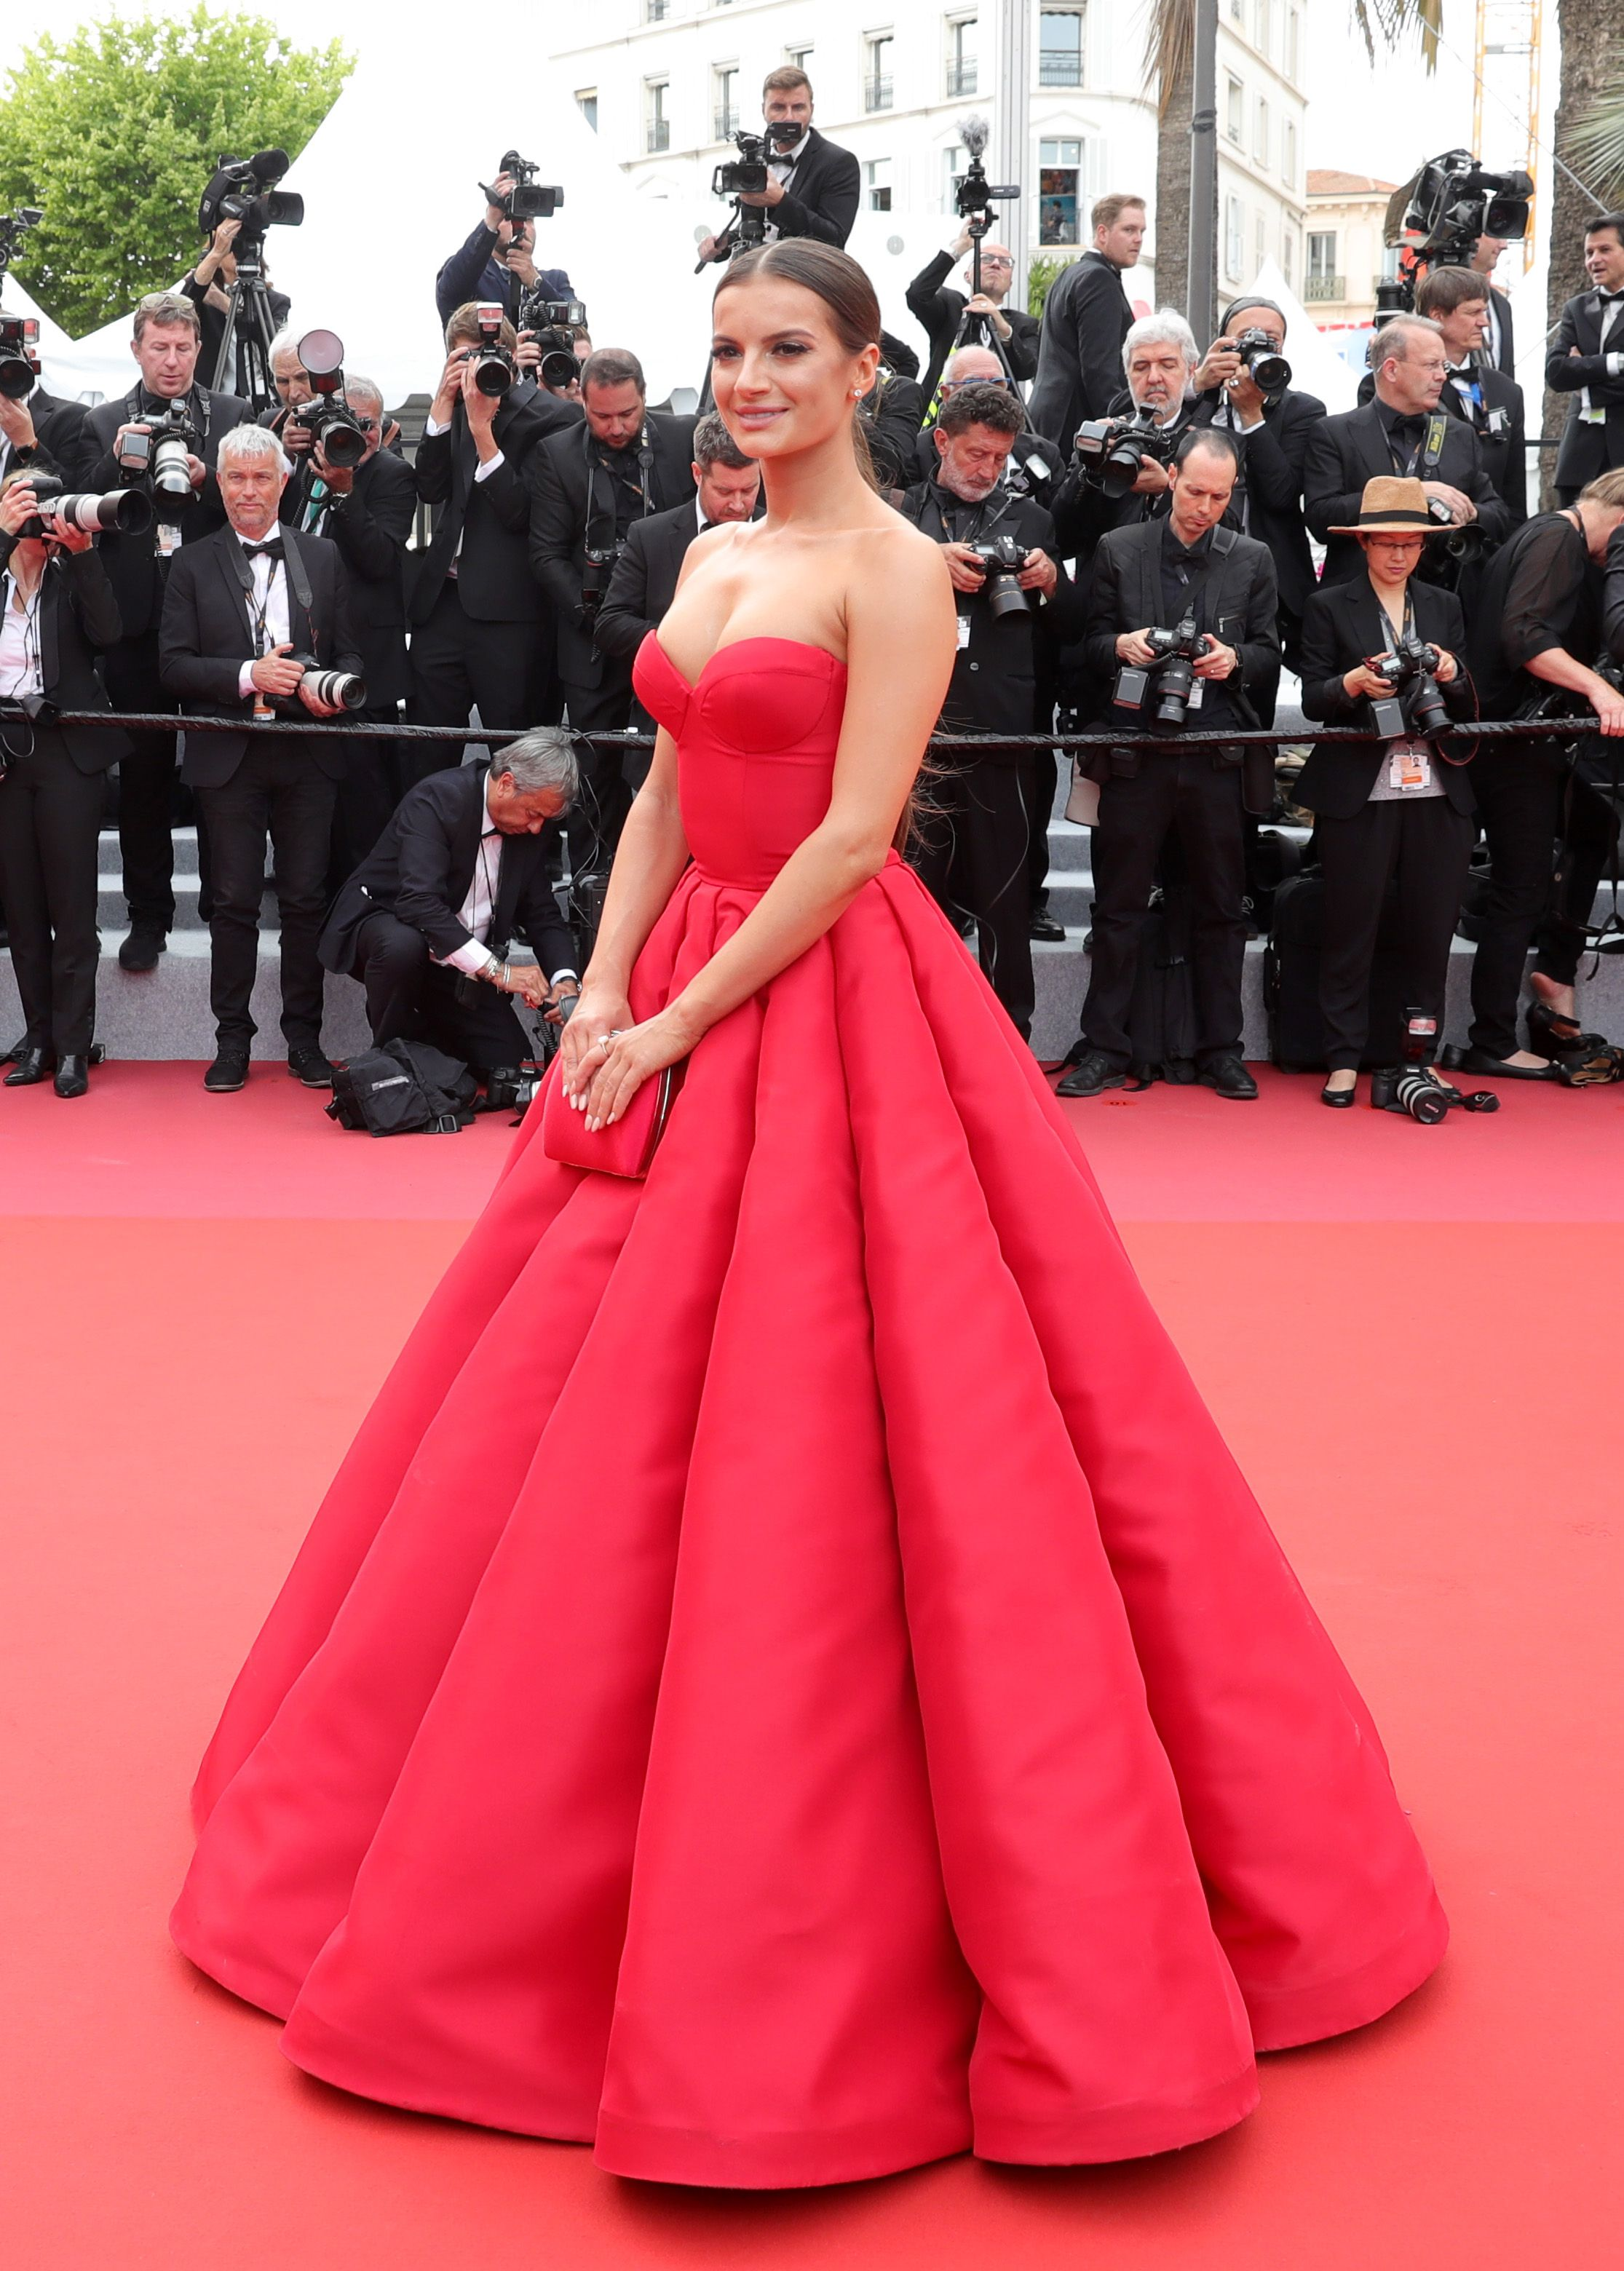 Natalia Janoszek At the opening ceremony of the Cannes Film Festival and premiere of The Dead Don't Die .